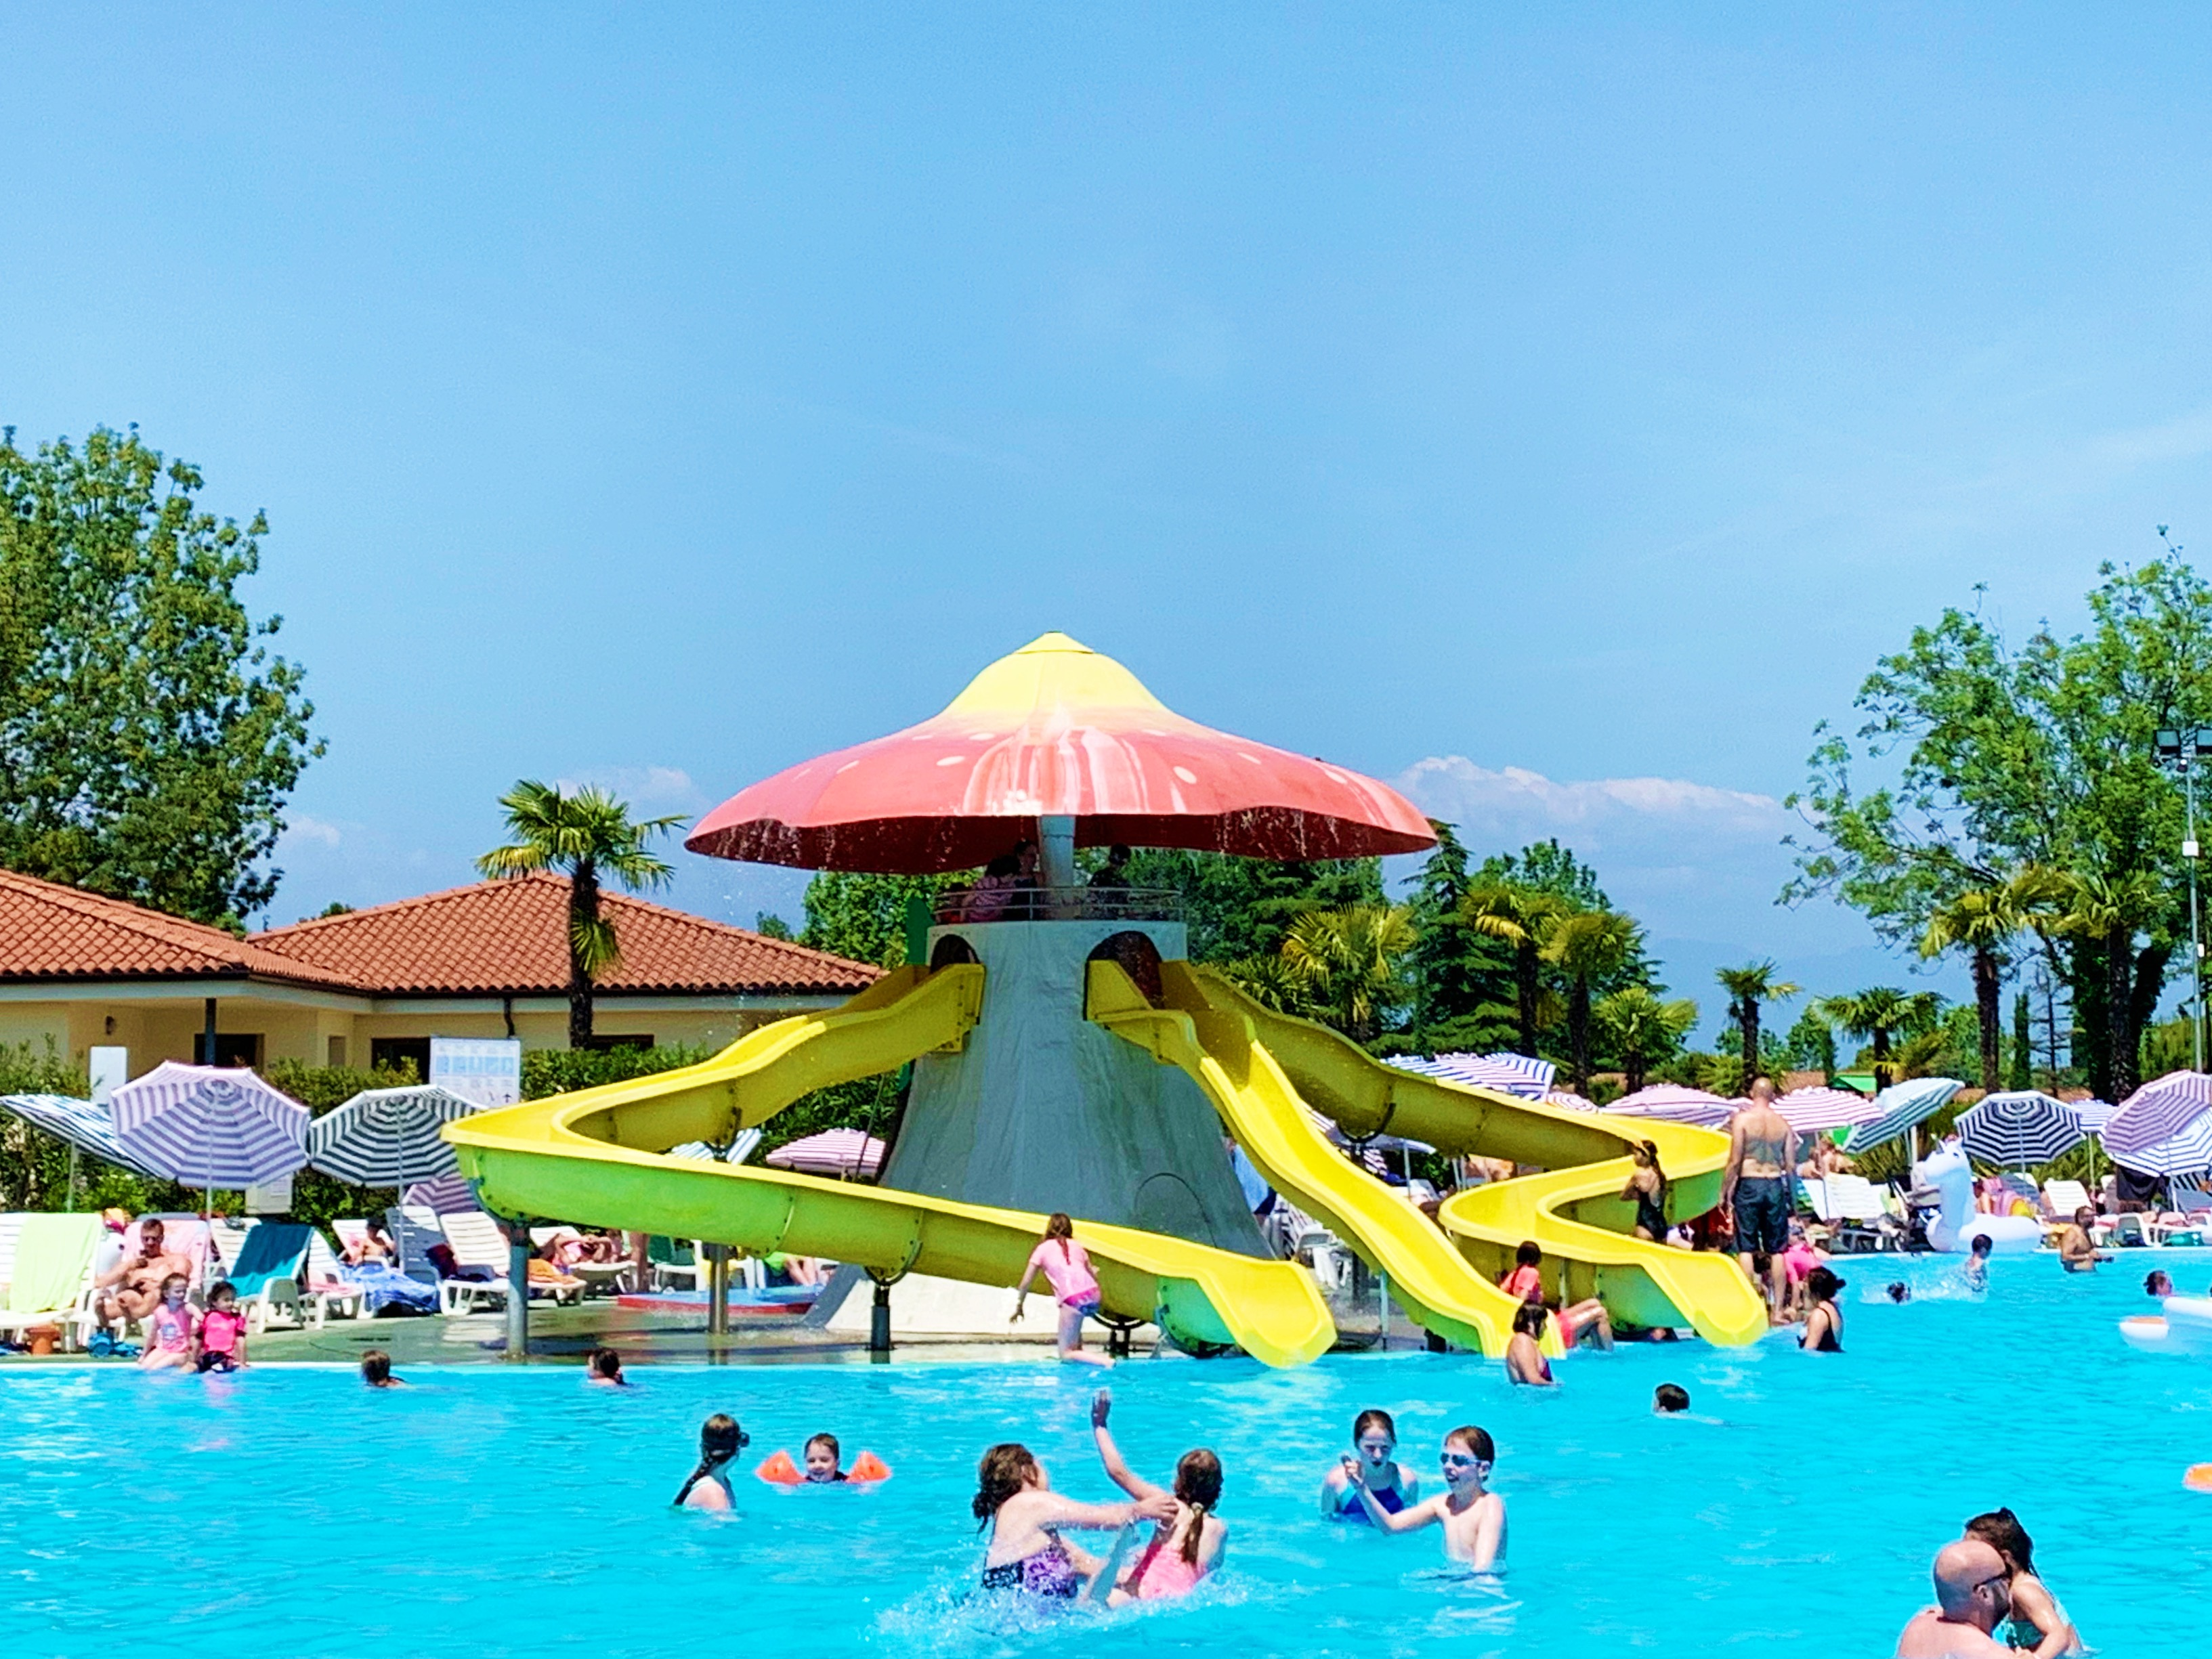 A swimming pool with yellow slides going in to it in Eurocamp Bella Italia on Lake Garda